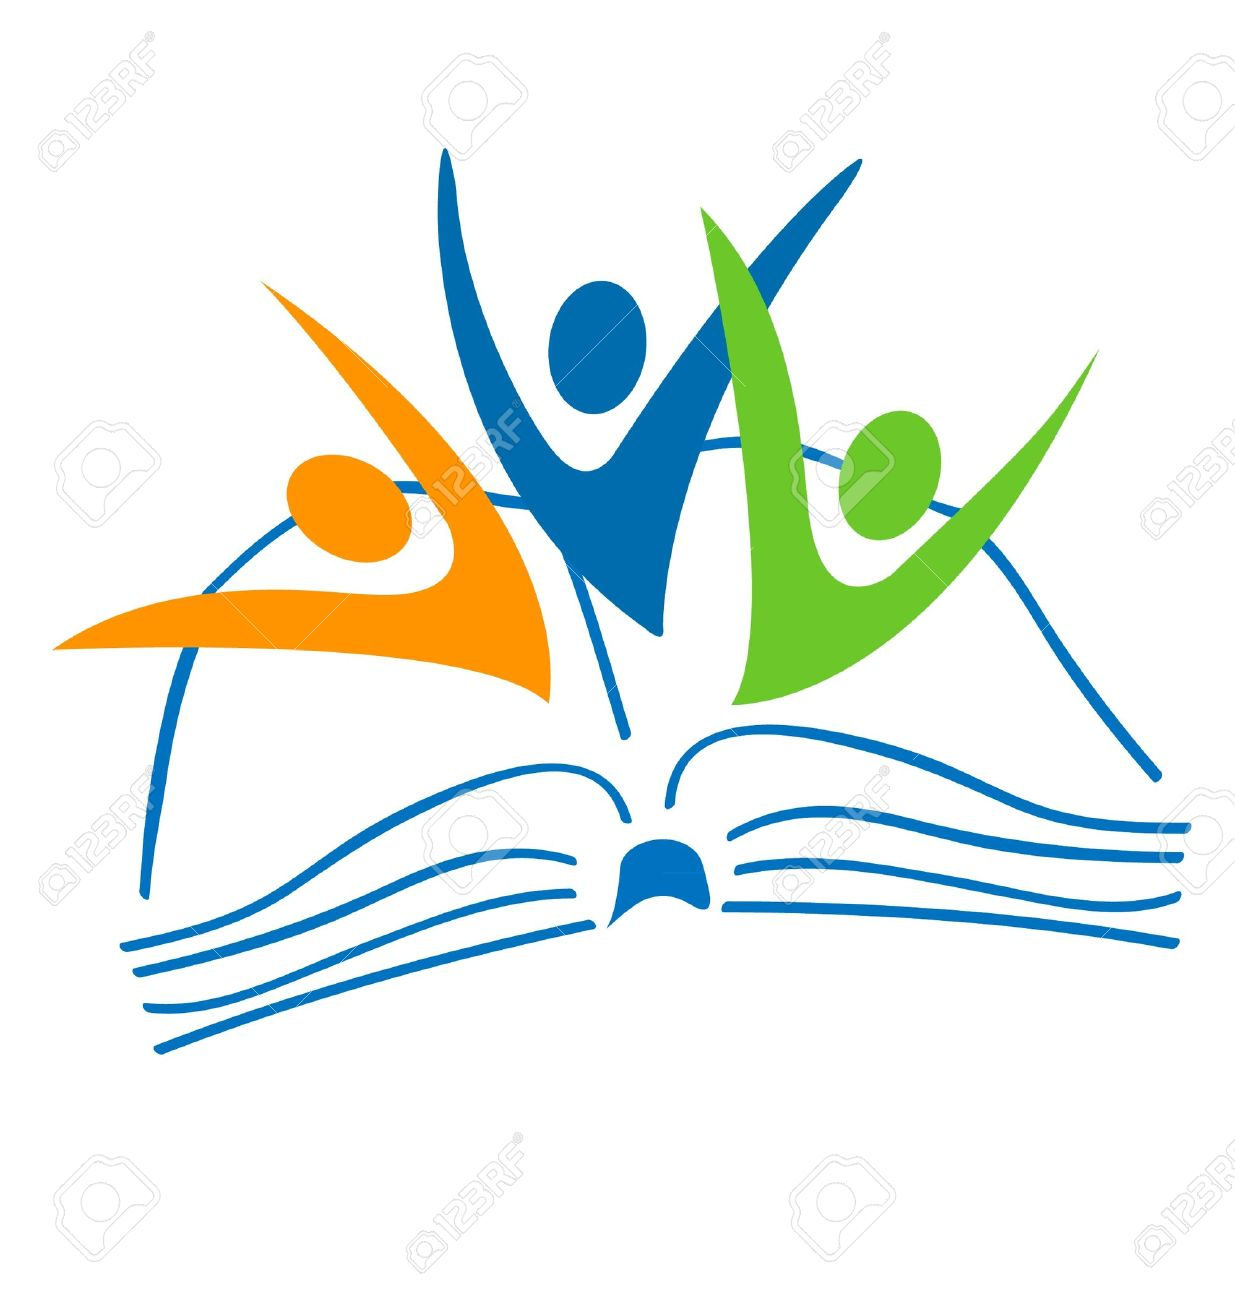 open book and students figures logo royalty free cliparts vectors rh 123rf com open book logo vector free download open book logo design